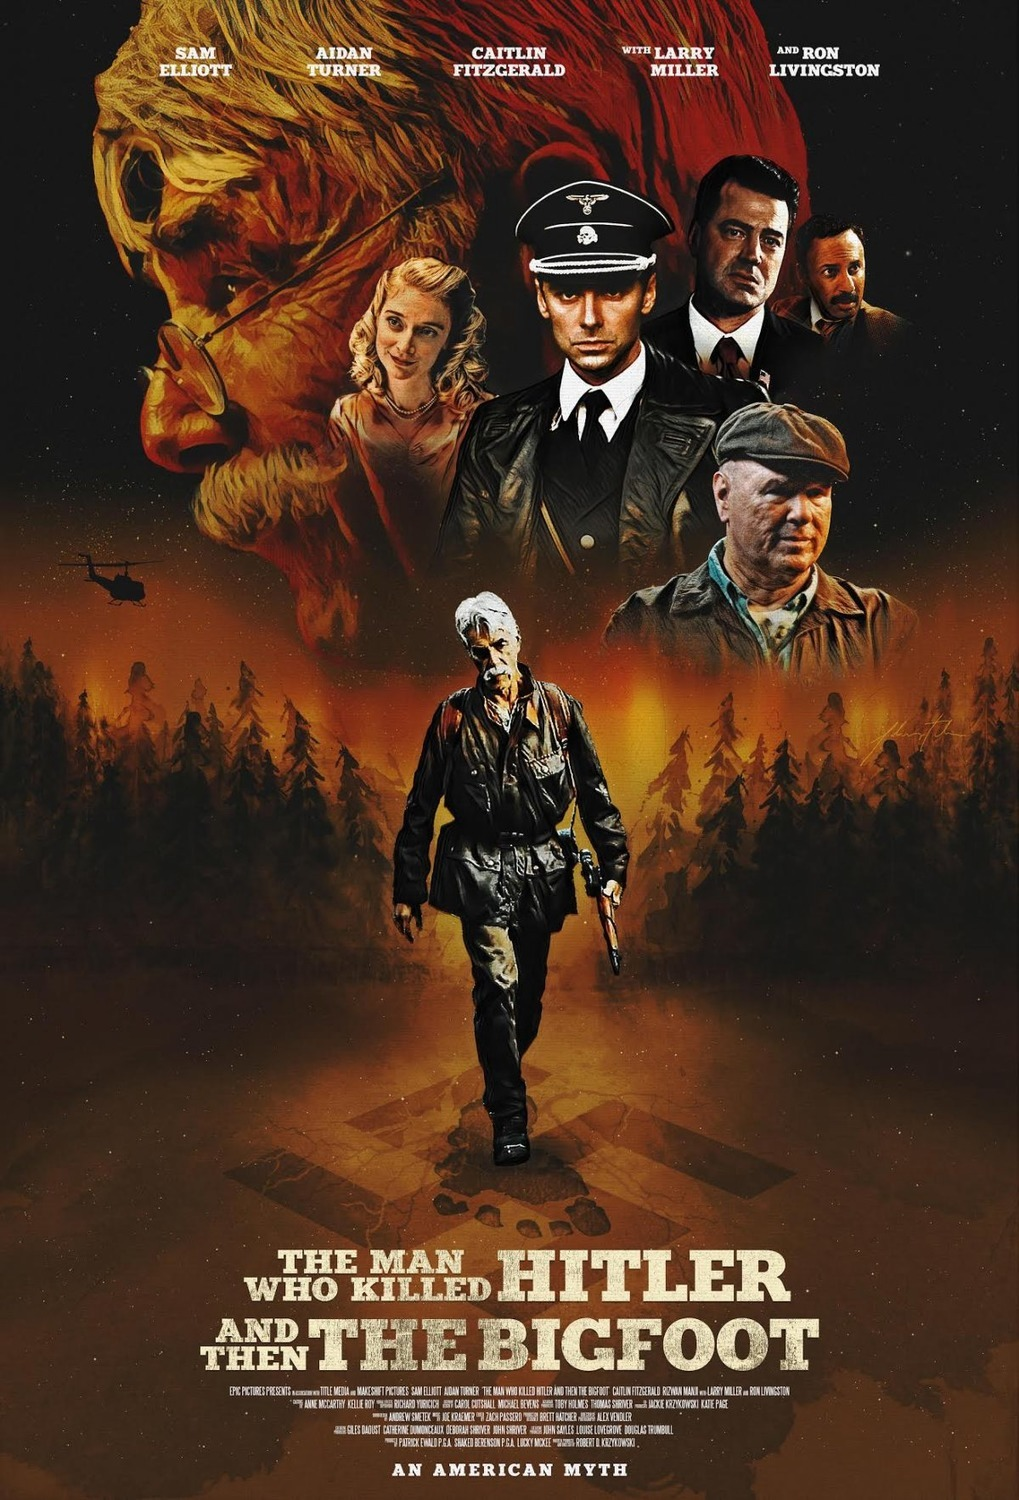 The Man Who Killed Hitler and Then The Bigfoot (2018) Fragman İzle